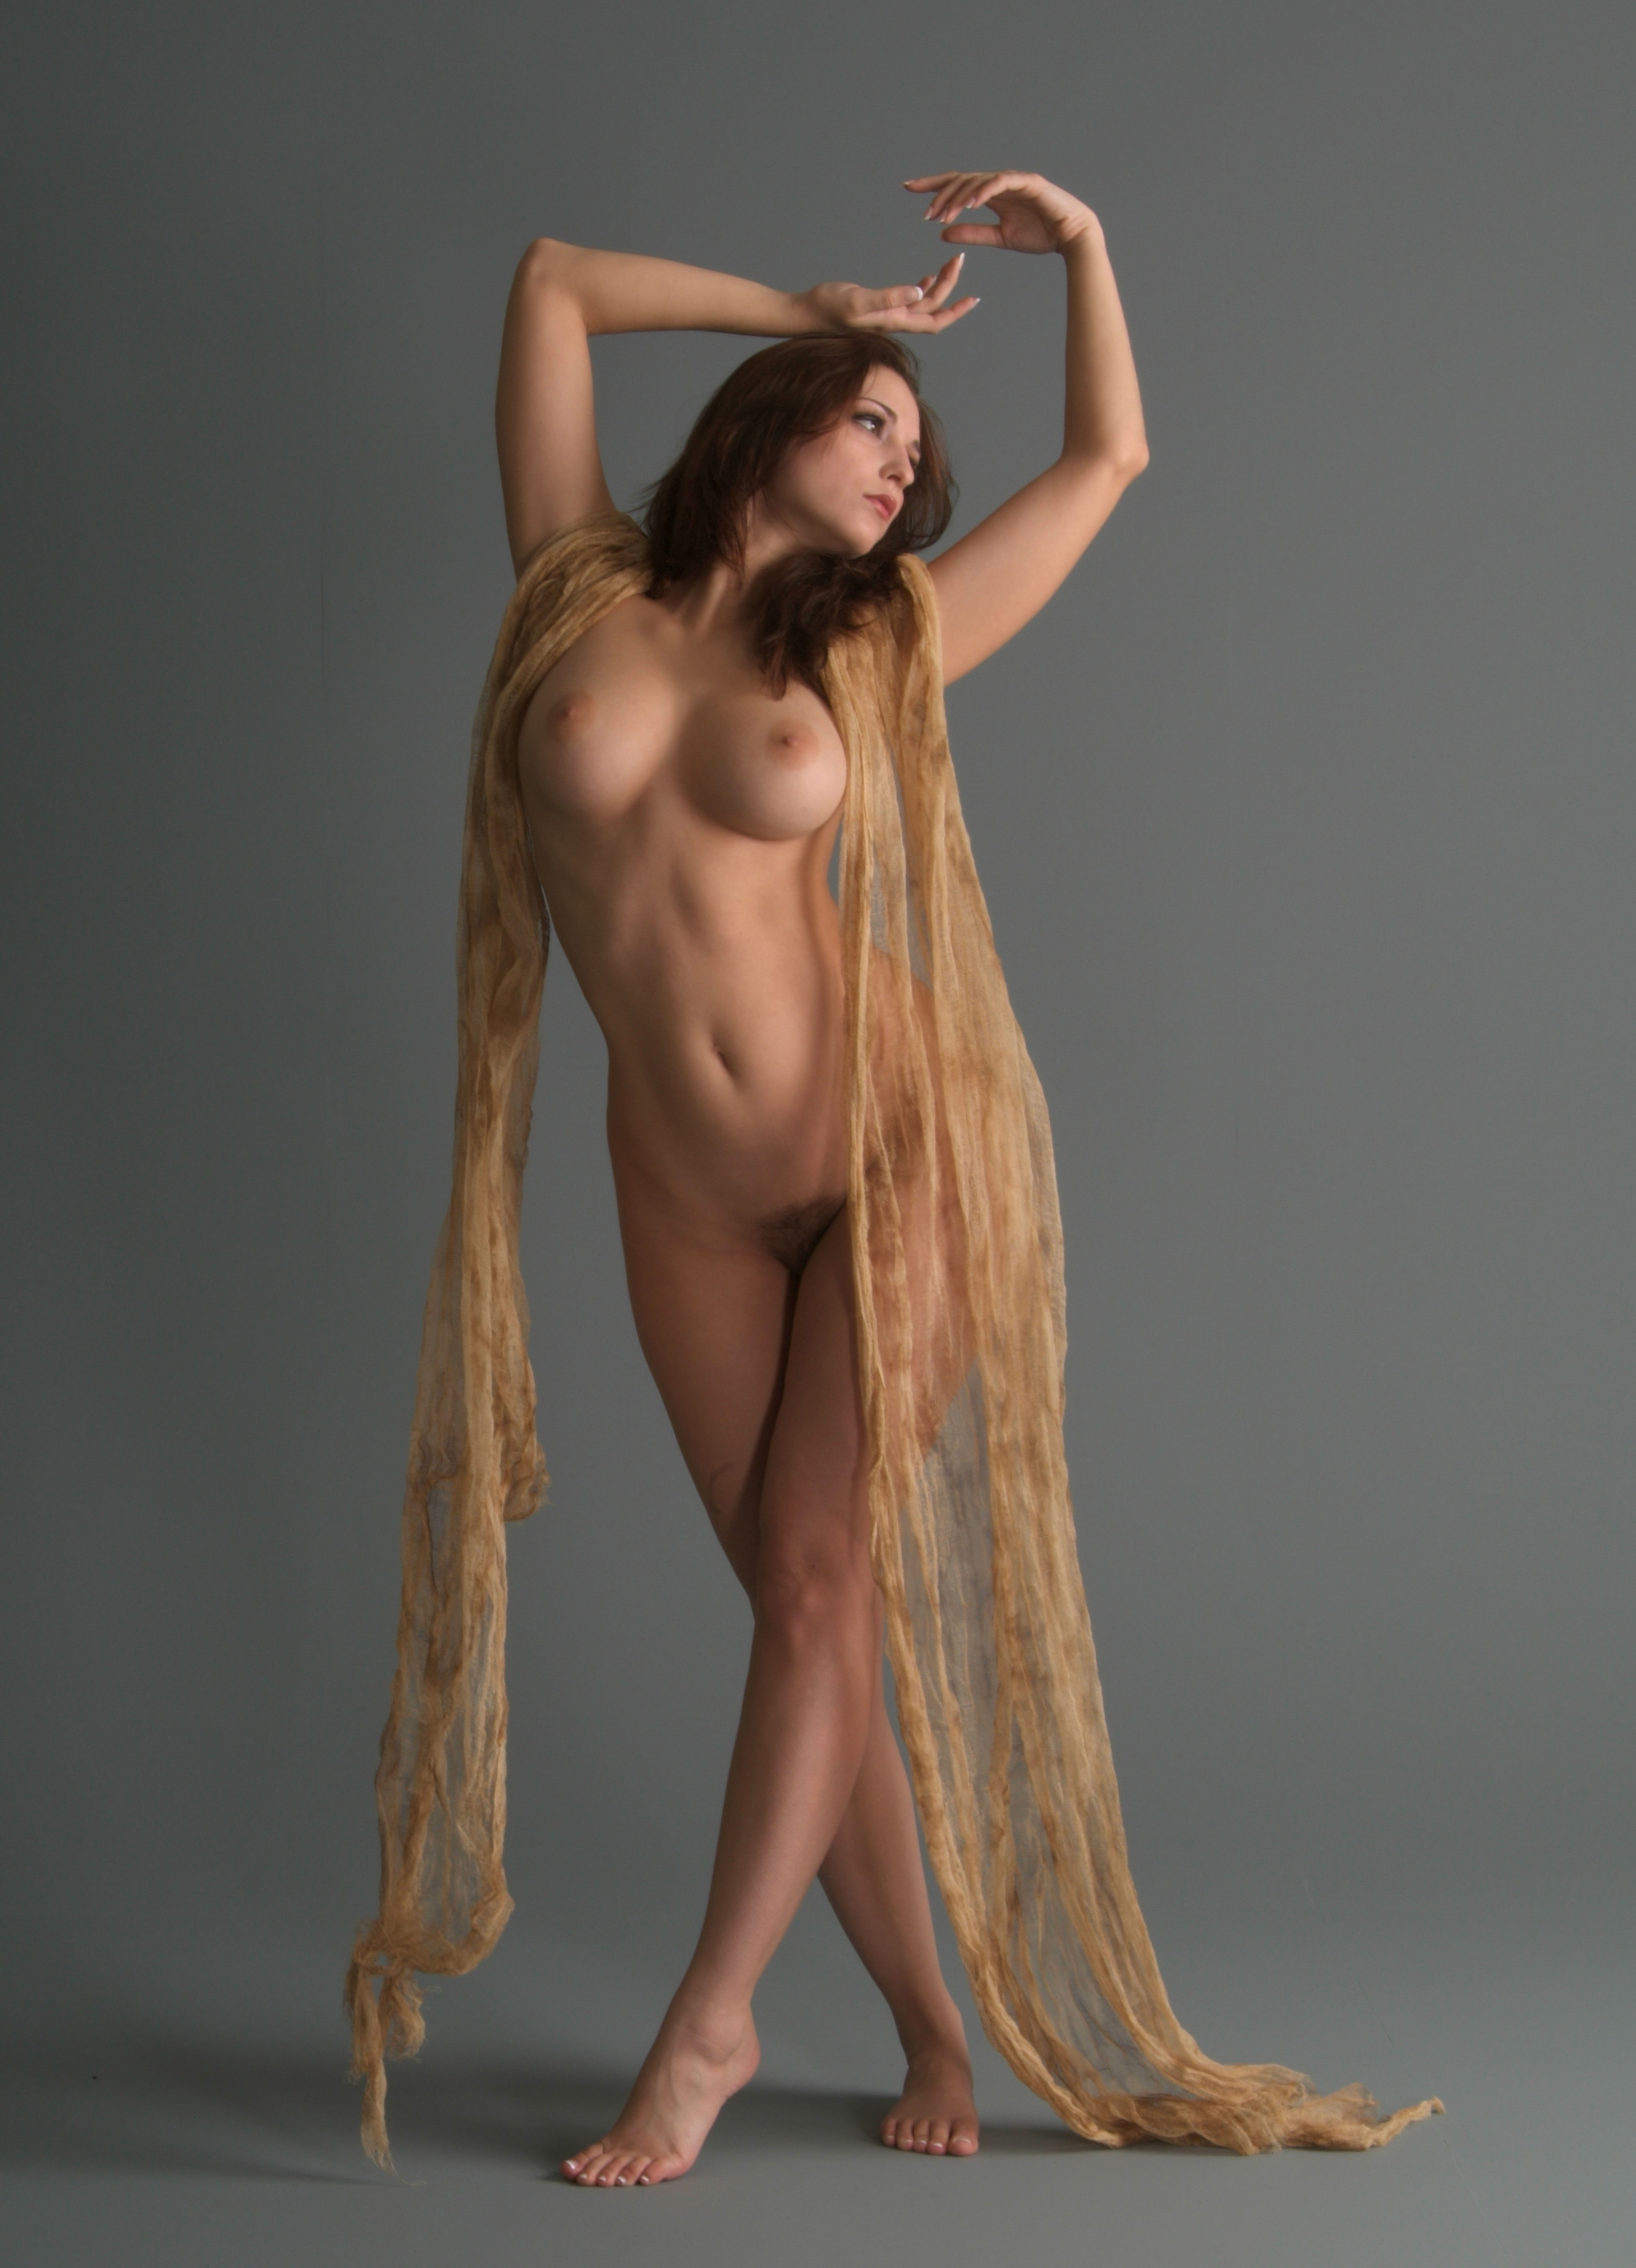 womens-figure-nude